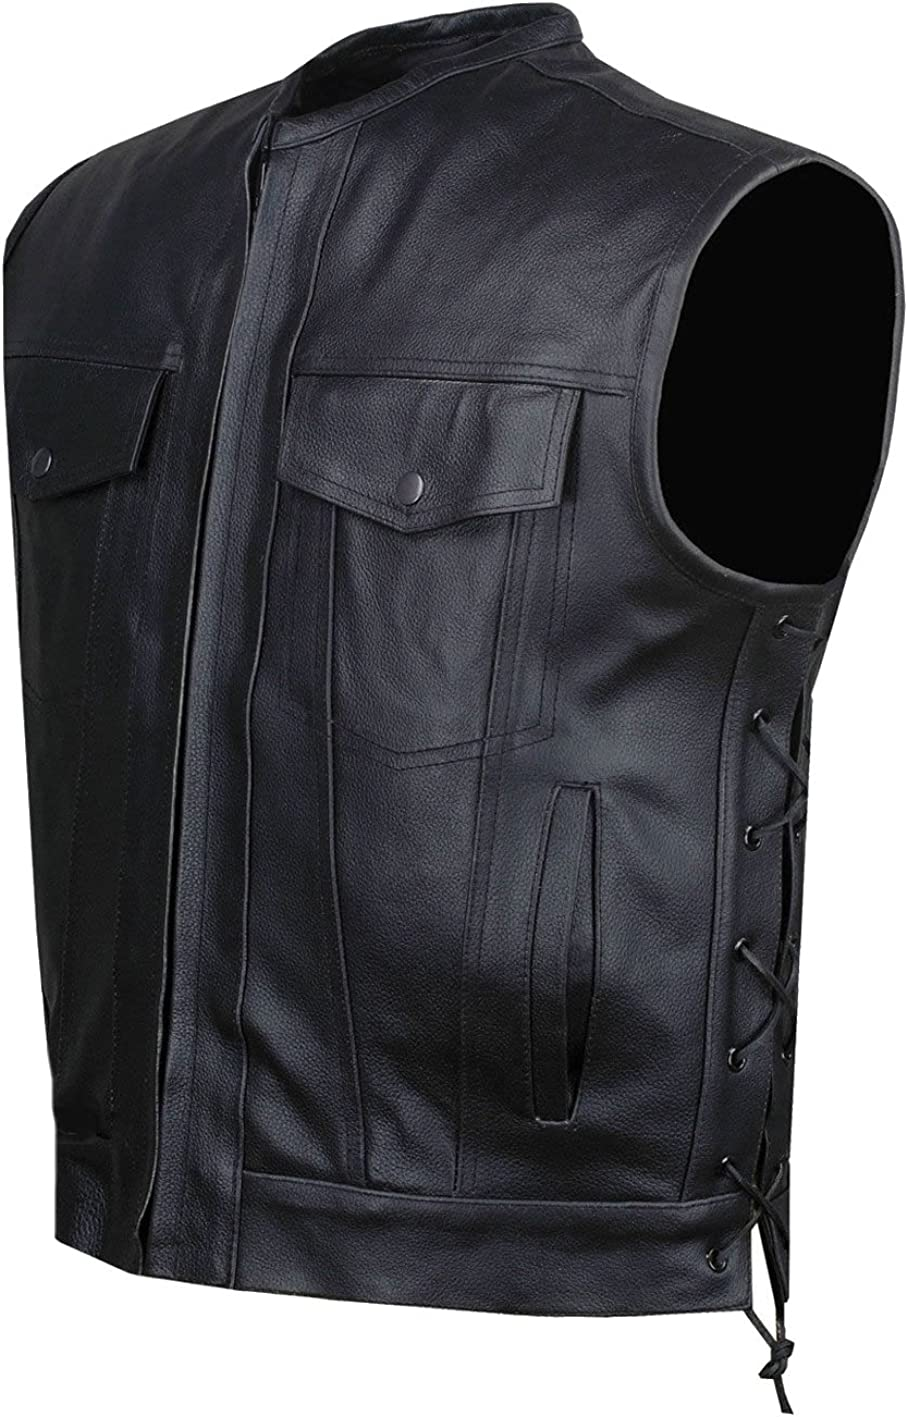 Classyak Mens Fashion Stylish Biker Genuine Leather Vest